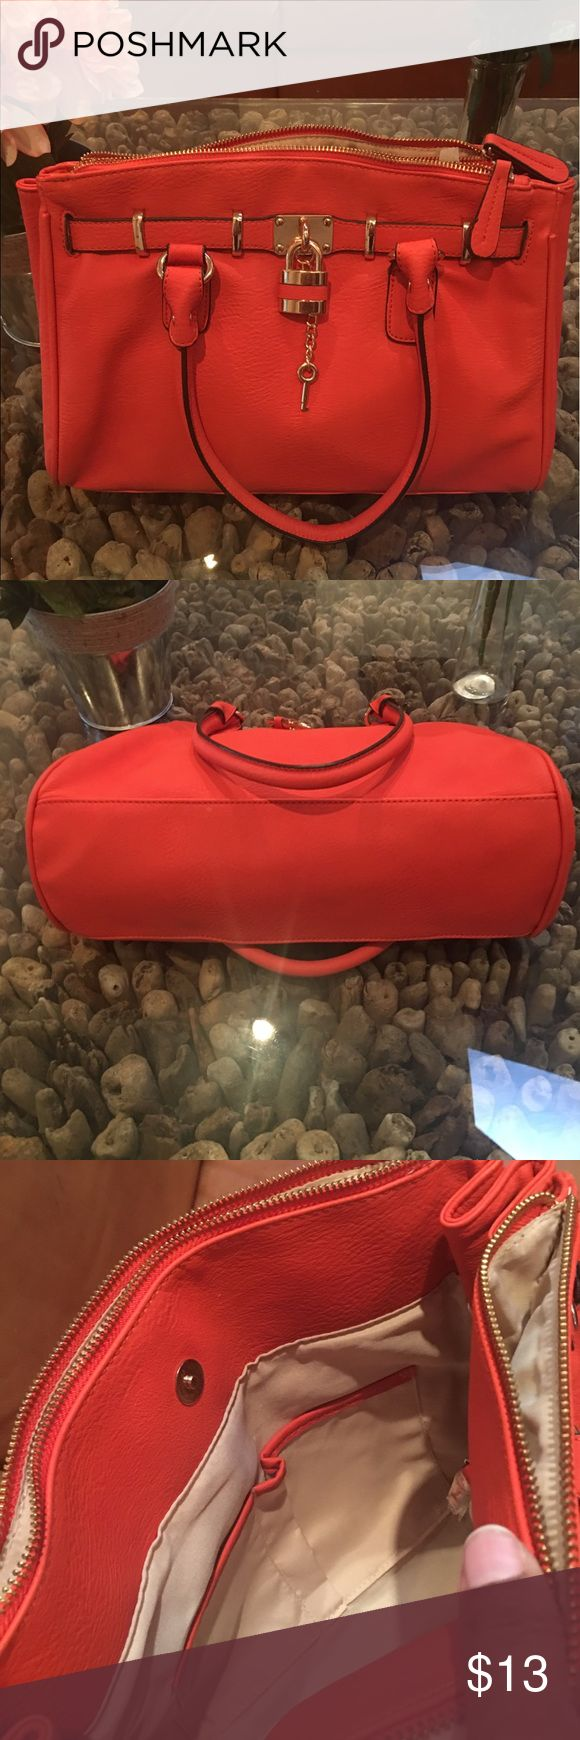 ALDO - Medium sized bag Re-Posh. This is a beautiful bag and in great condition, just not large enough for me.   12in x 9in (medium sized) Bags Satchels